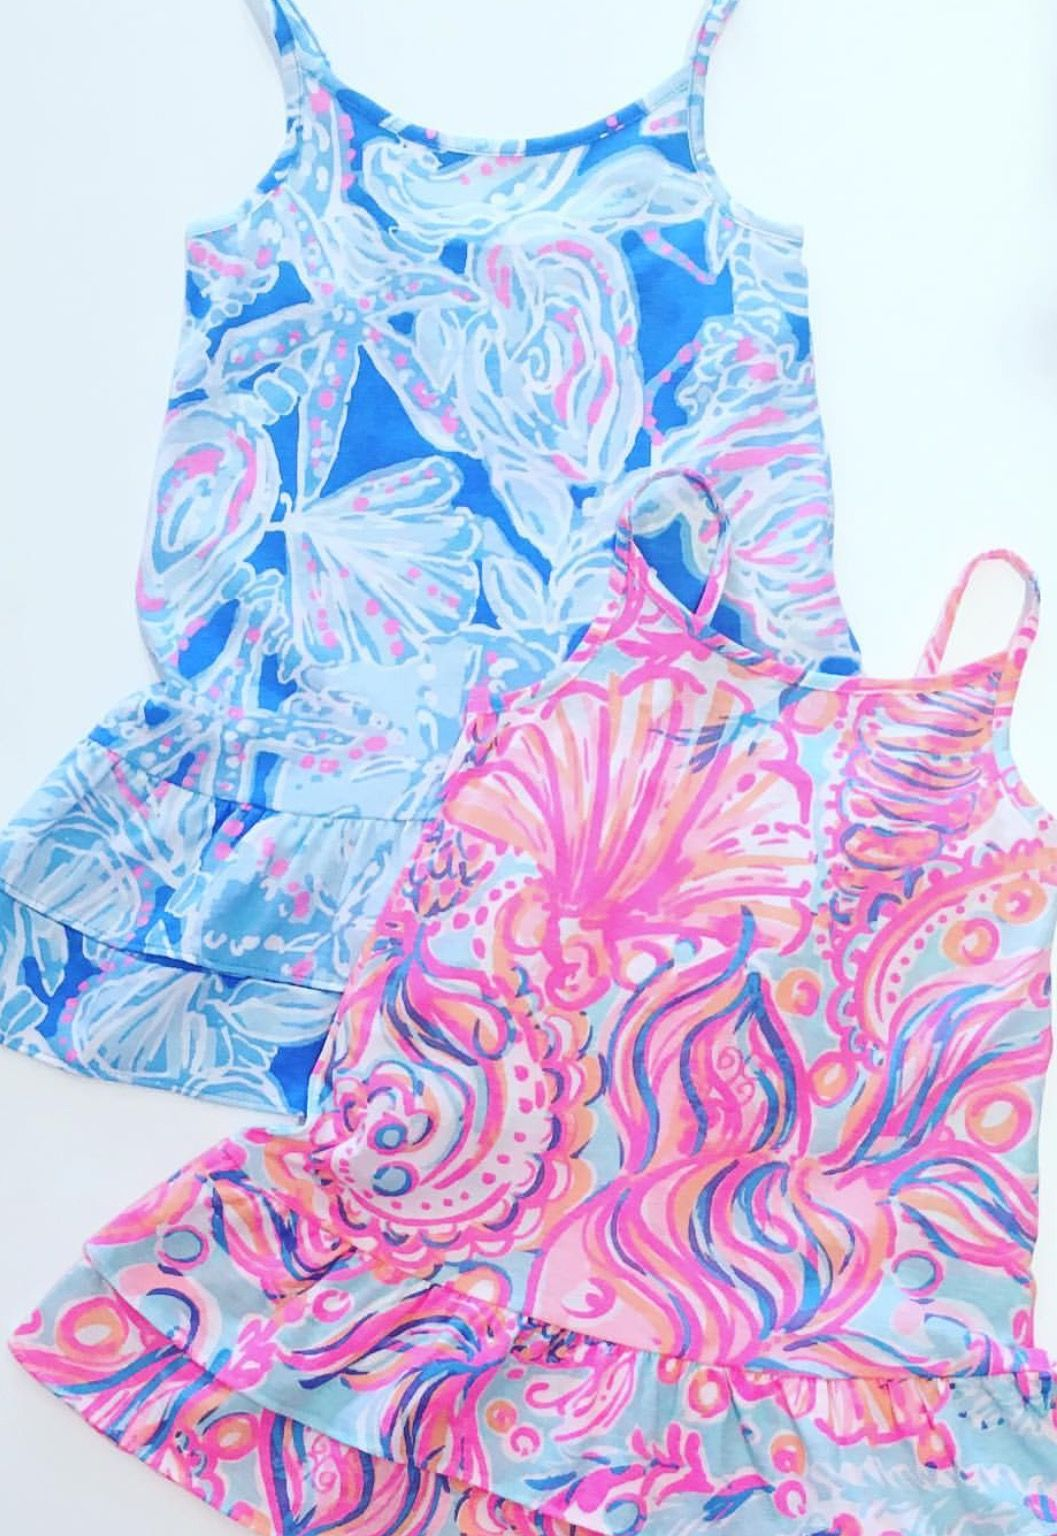 Lilly Pulitzer Lilly Pulitzer Pinterest